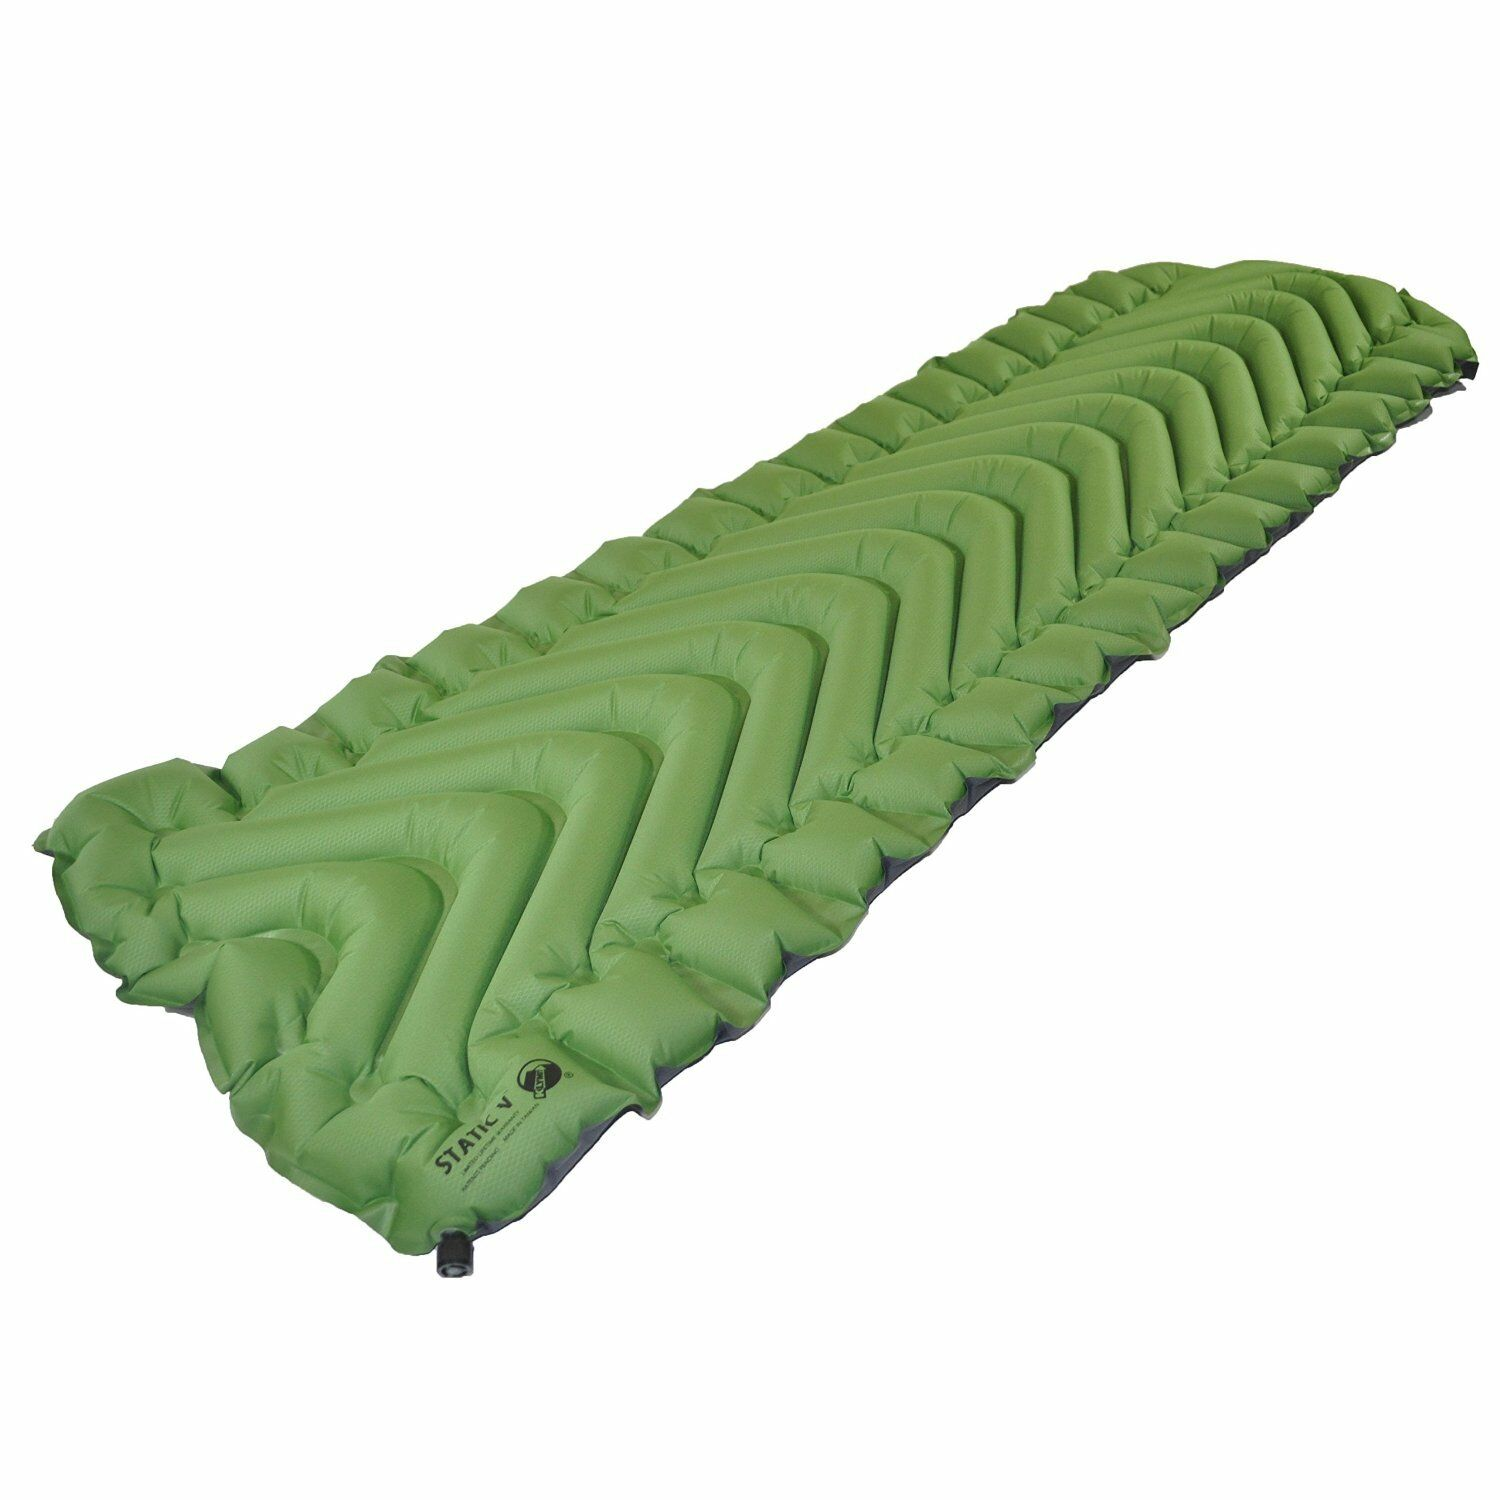 Sleeping Pad Outdoor Camping Mattress Thermarest Self Air  Inflating Mat Travel  promotions